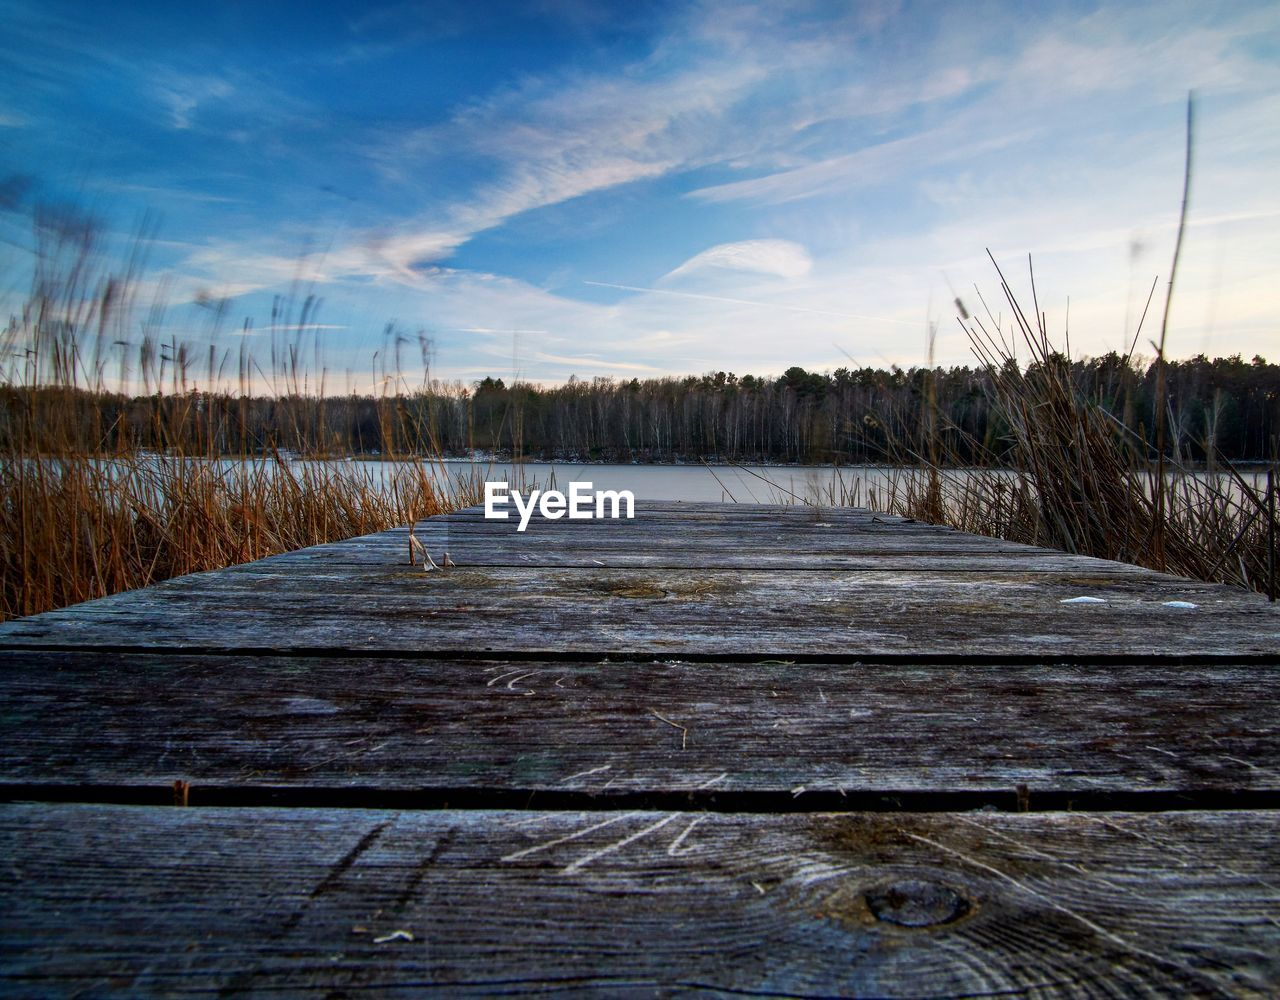 sky, wood - material, no people, cloud - sky, tranquility, tranquil scene, plant, nature, beauty in nature, scenics - nature, grass, land, non-urban scene, day, water, field, boardwalk, direction, outdoors